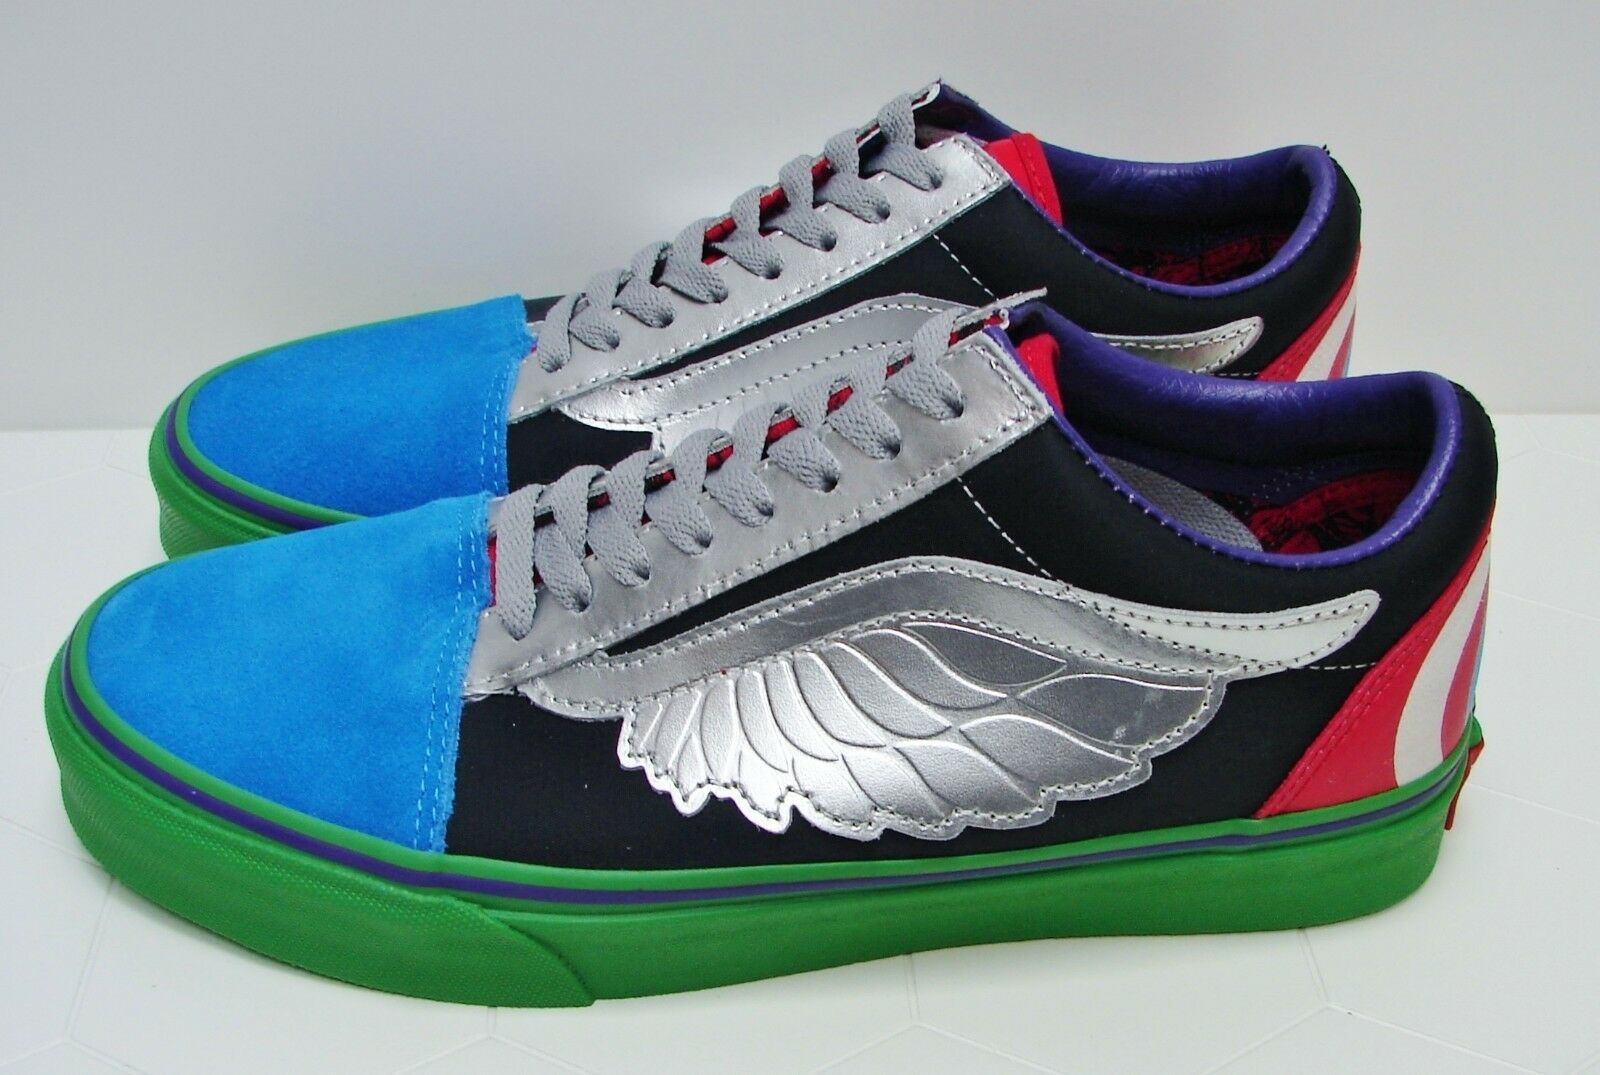 98f29738ca5f3 VANS Old Skool Avengers Multi Men s size 10 VN-0A38G1U3V (Marvel ...